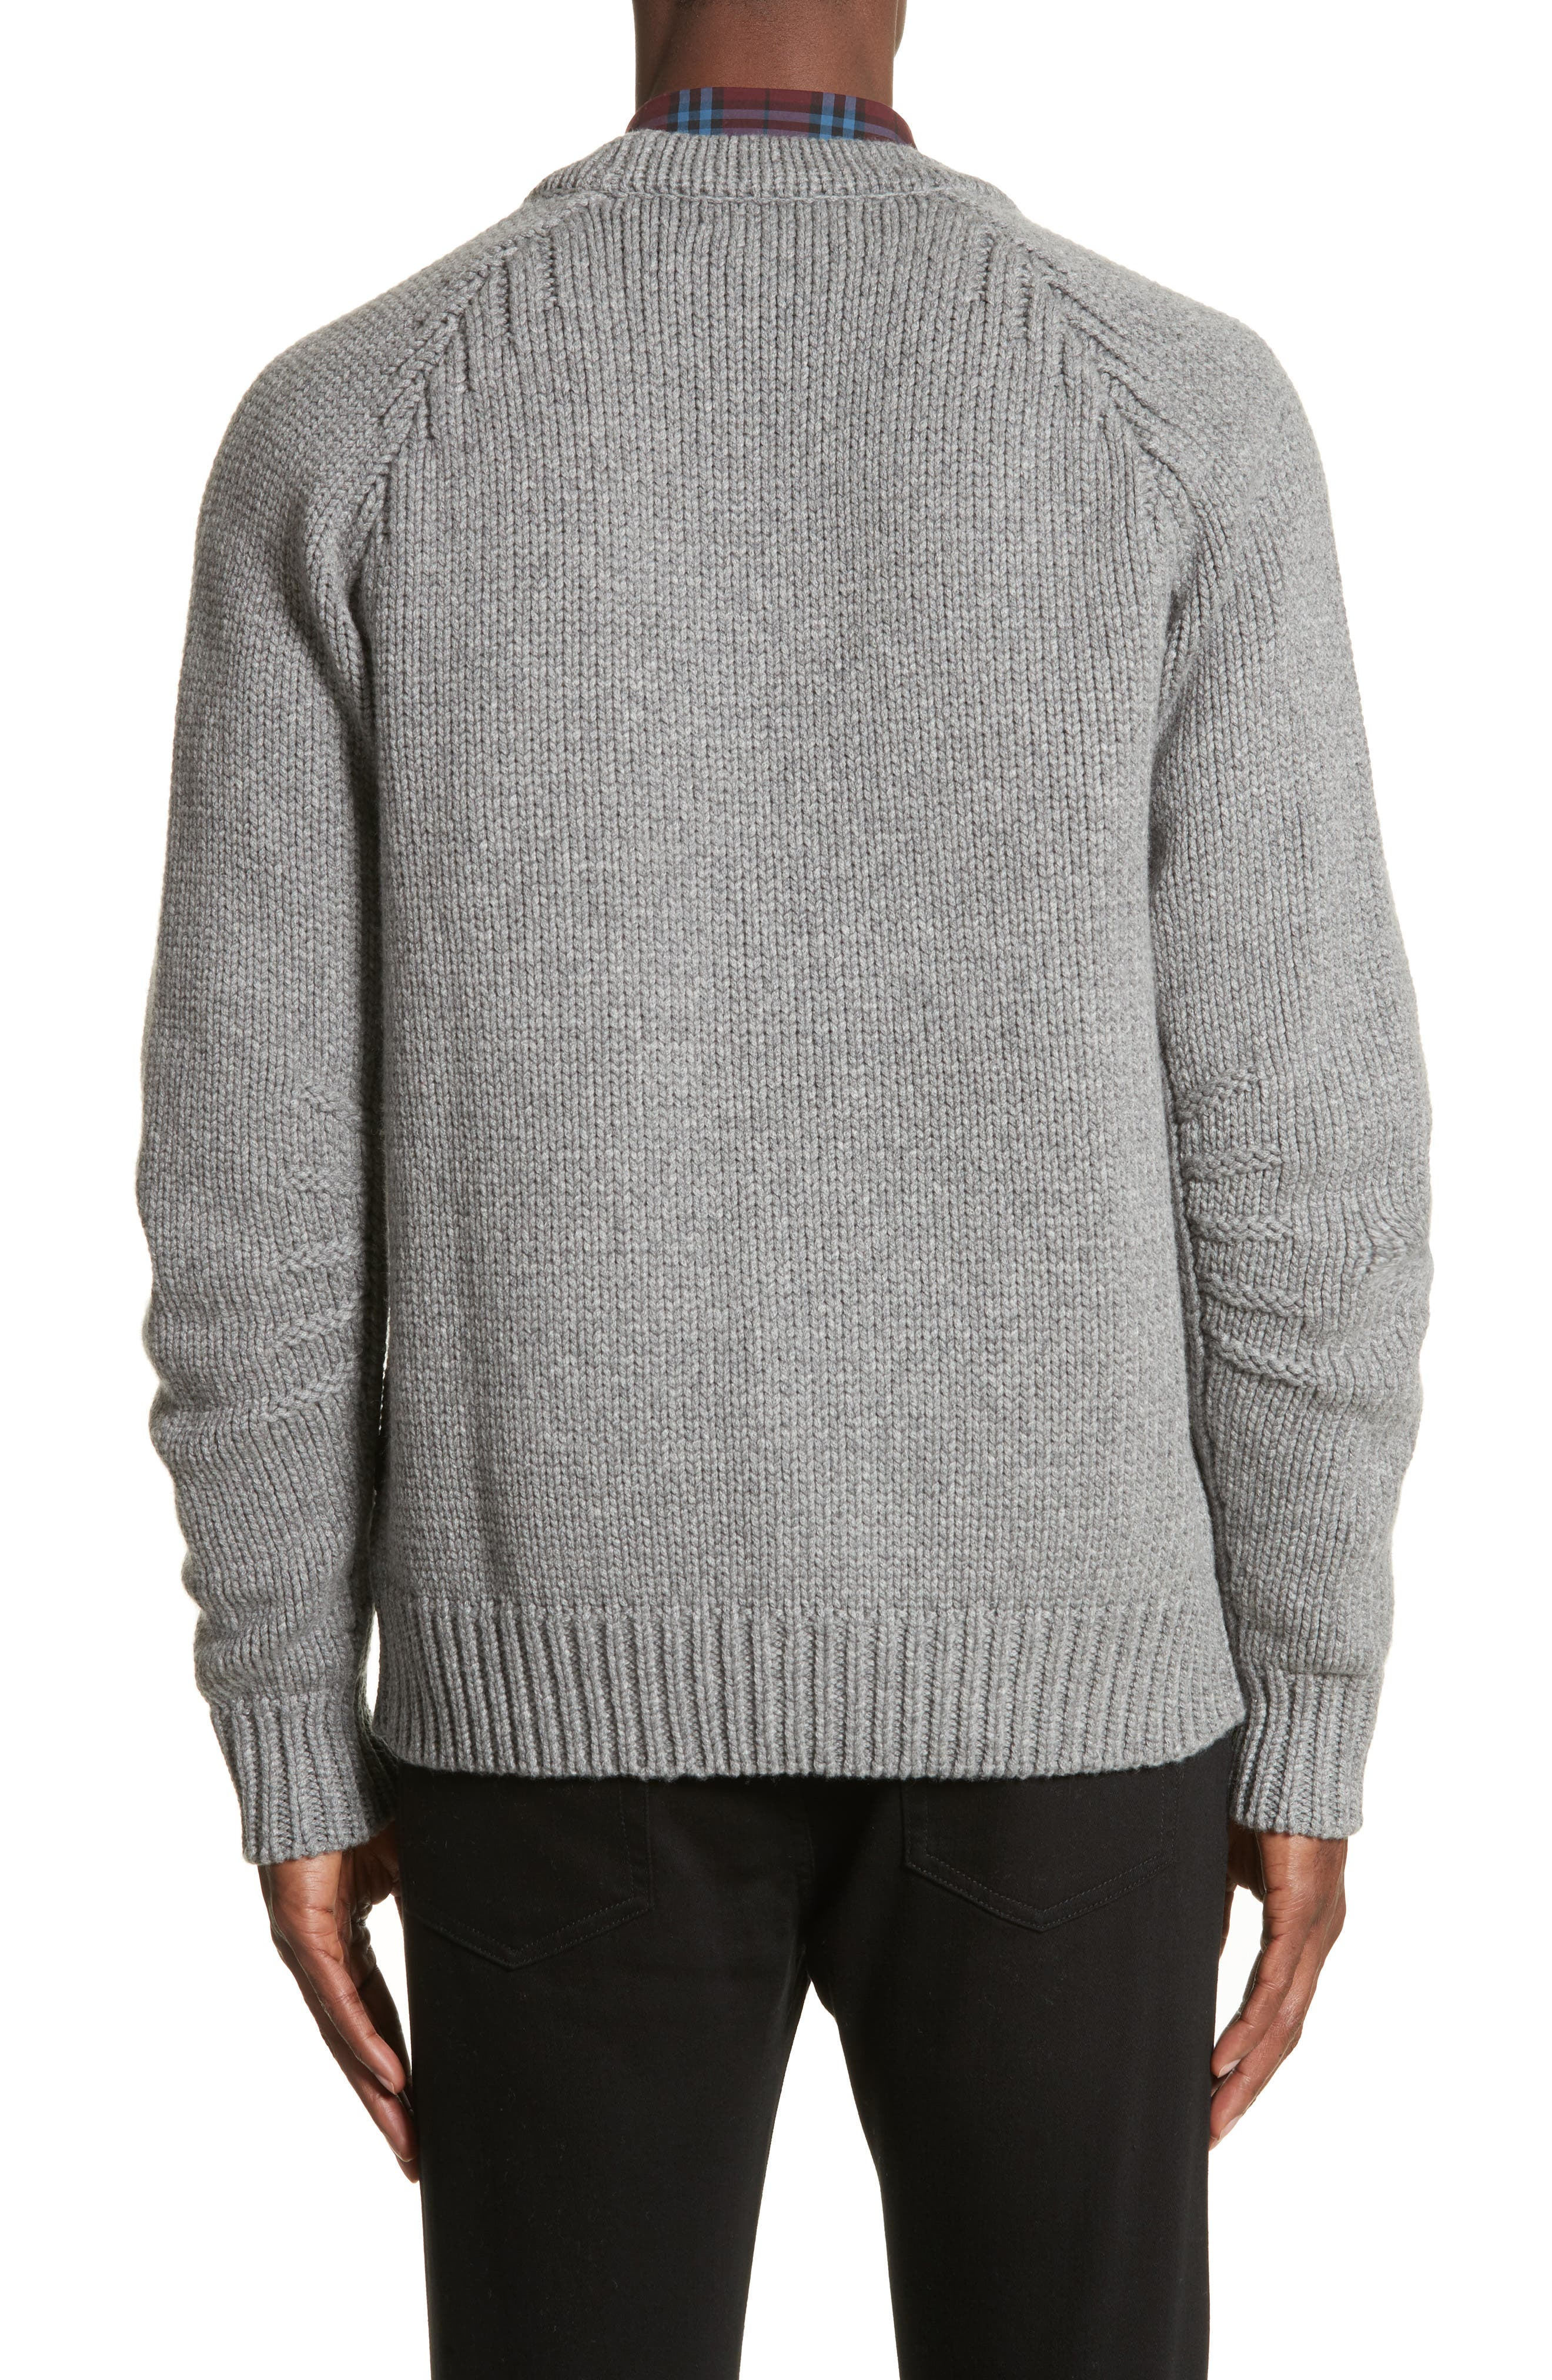 Caldwell Wool & Cashmere Cardigan,                             Alternate thumbnail 2, color,